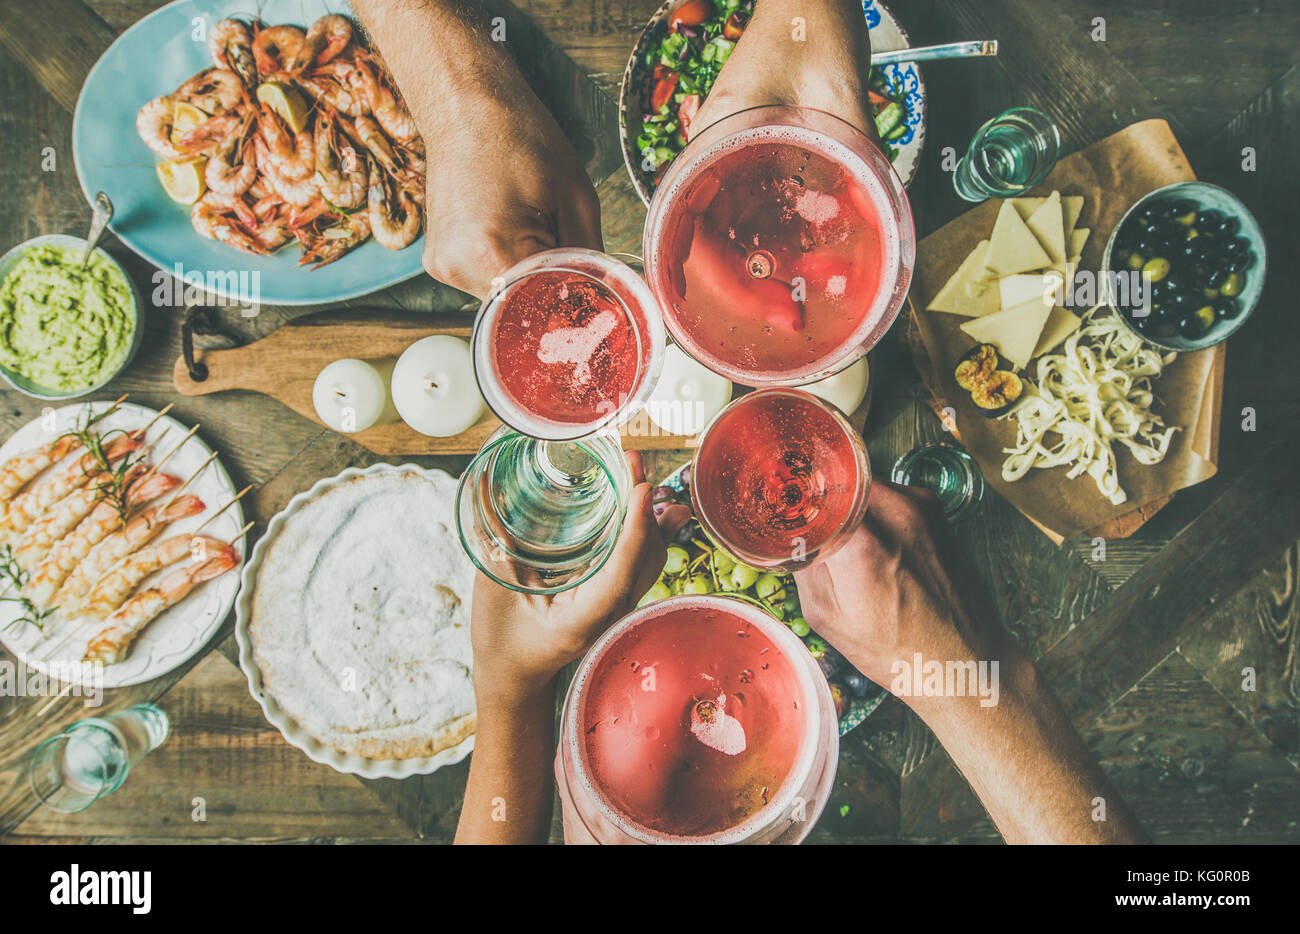 Flat-lay of friends hands eating and drinking together, horizontal composition - Stock Image